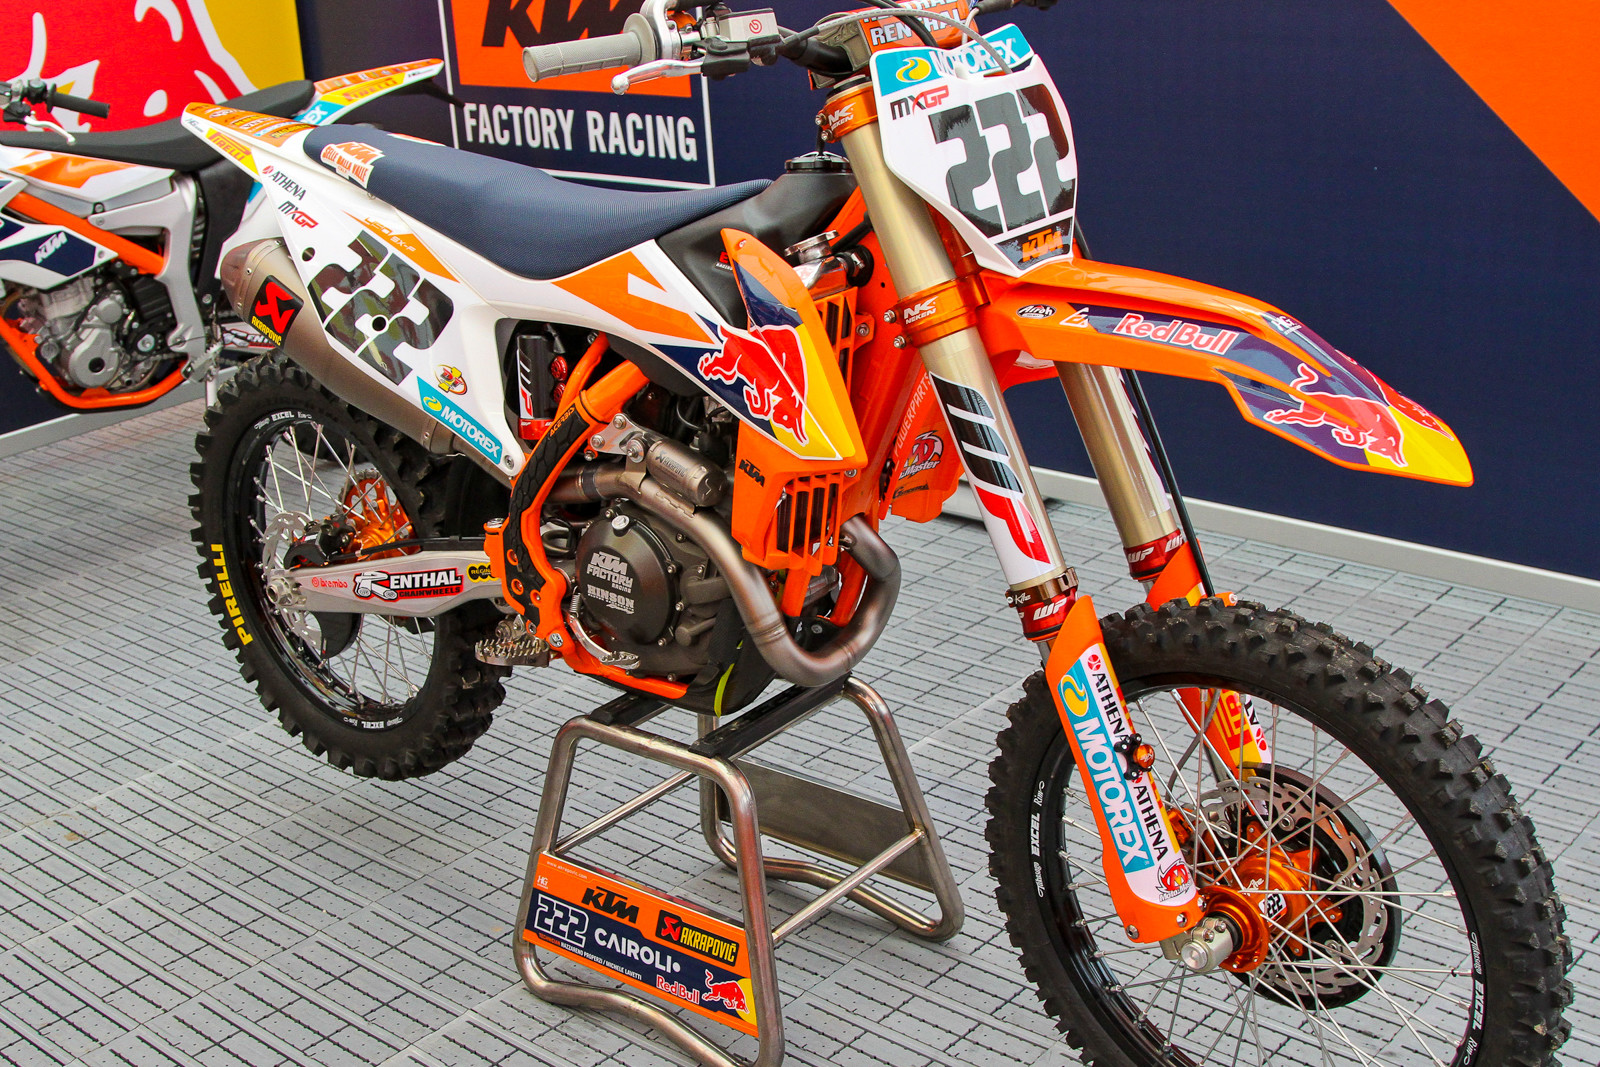 Antonio Cairoli is on the new bike...but with some hold over parts.